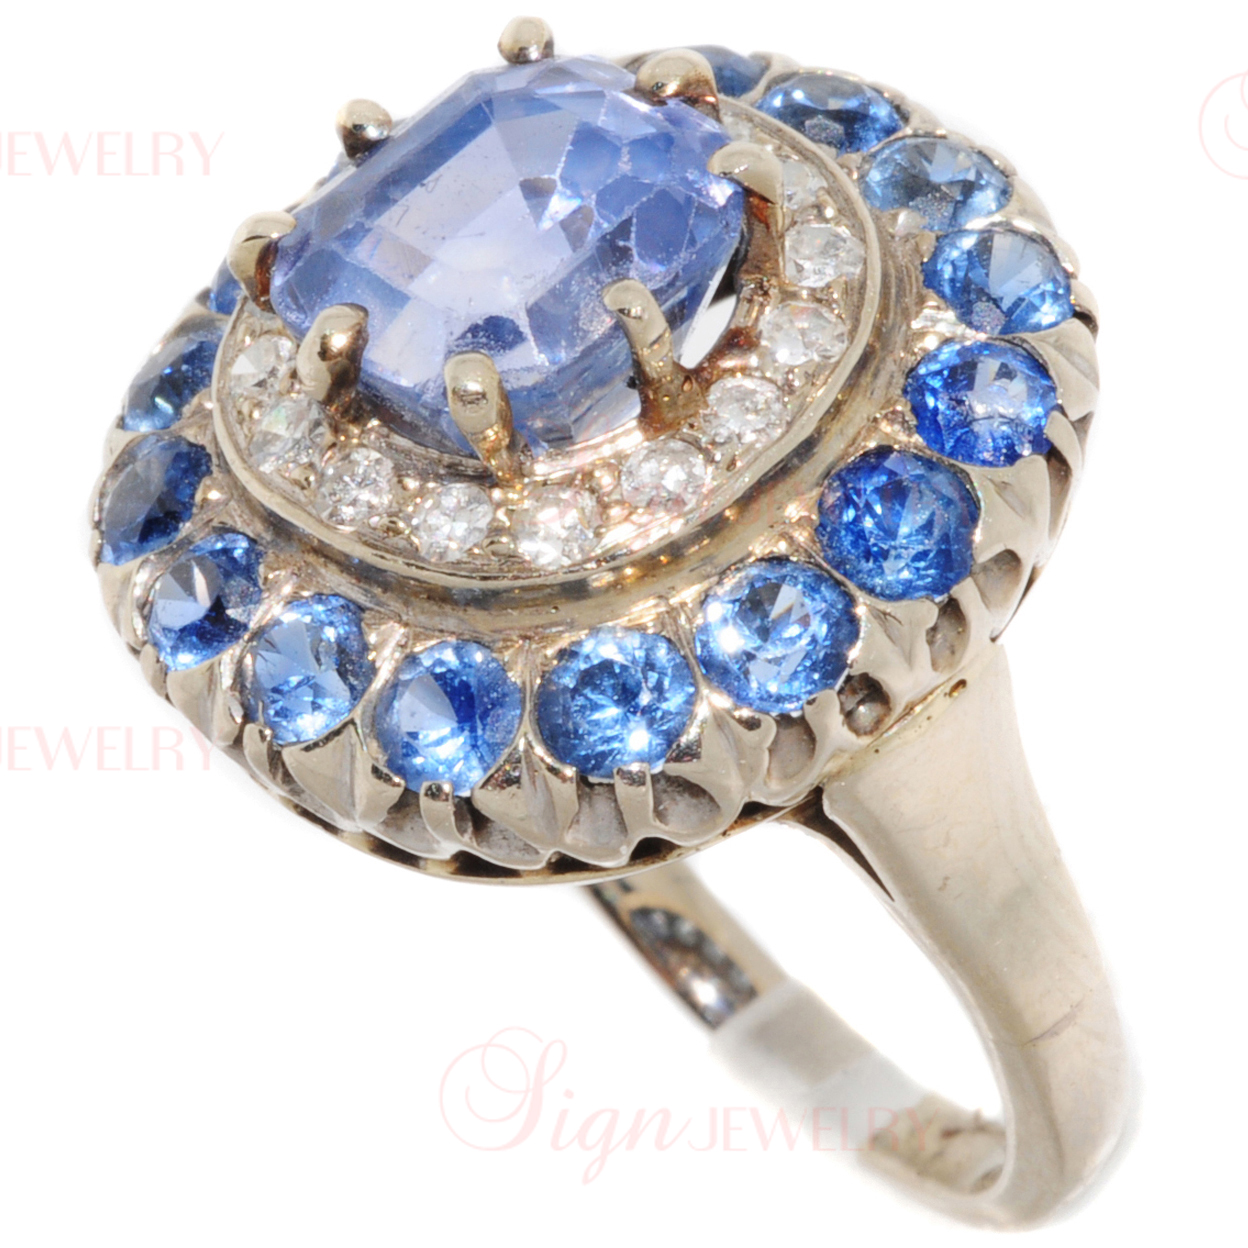 Retro 14k White Gold Blue Sapphire Diamond Cocktail Ring